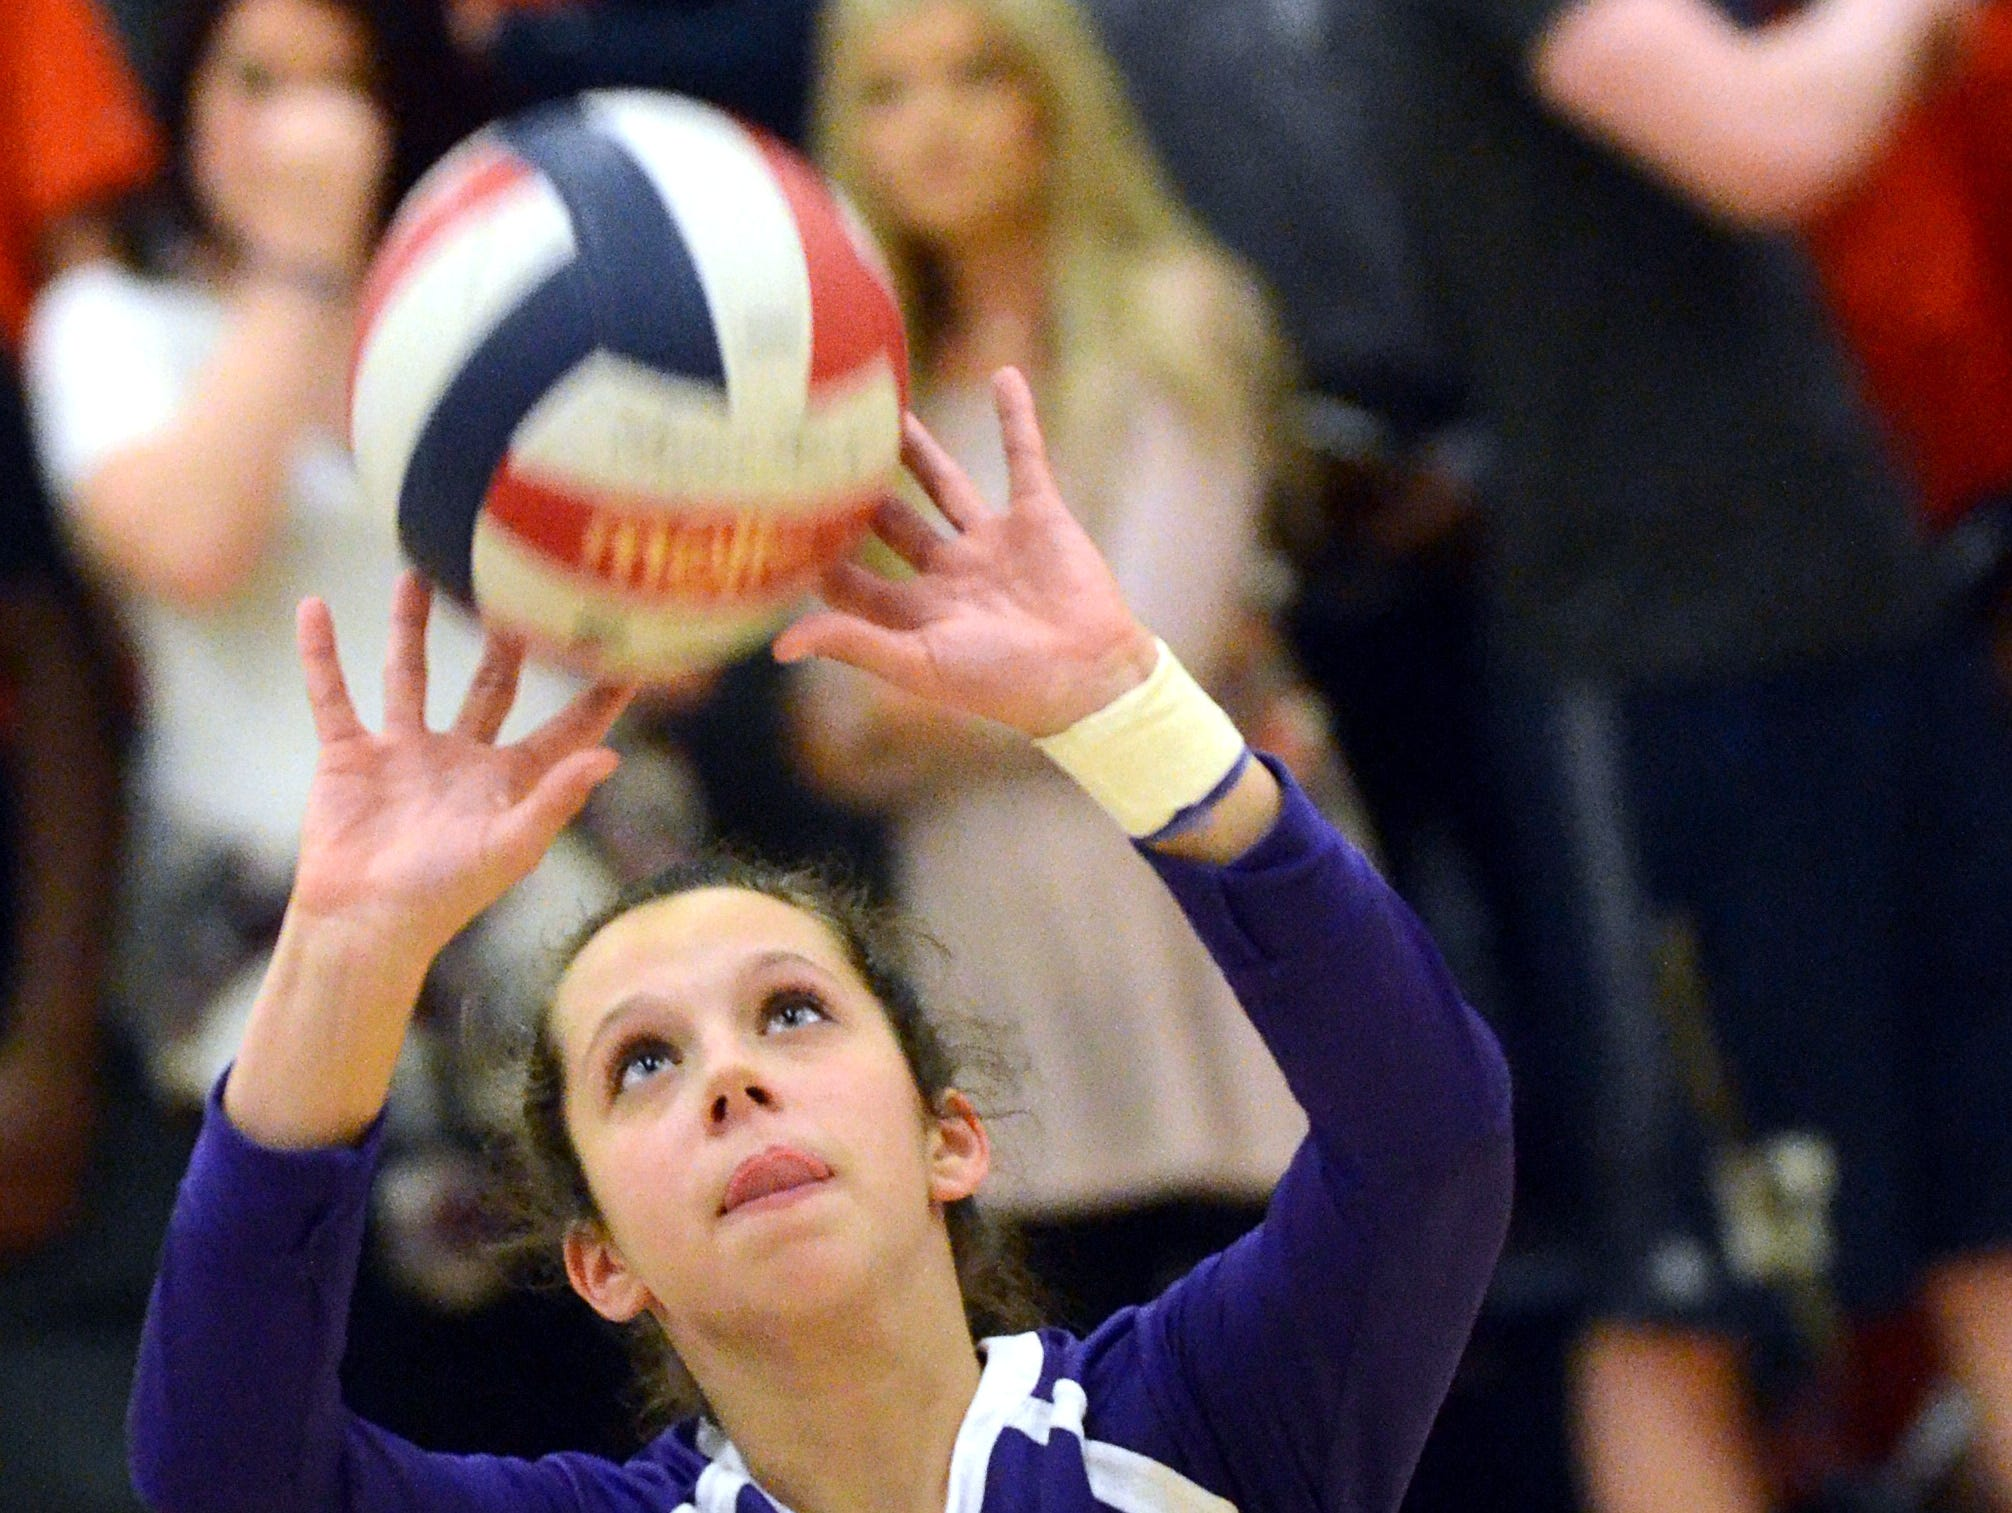 Portland High sophomore Rachel Jennings sets a pass during the second game of Tuesday evening's championship match.